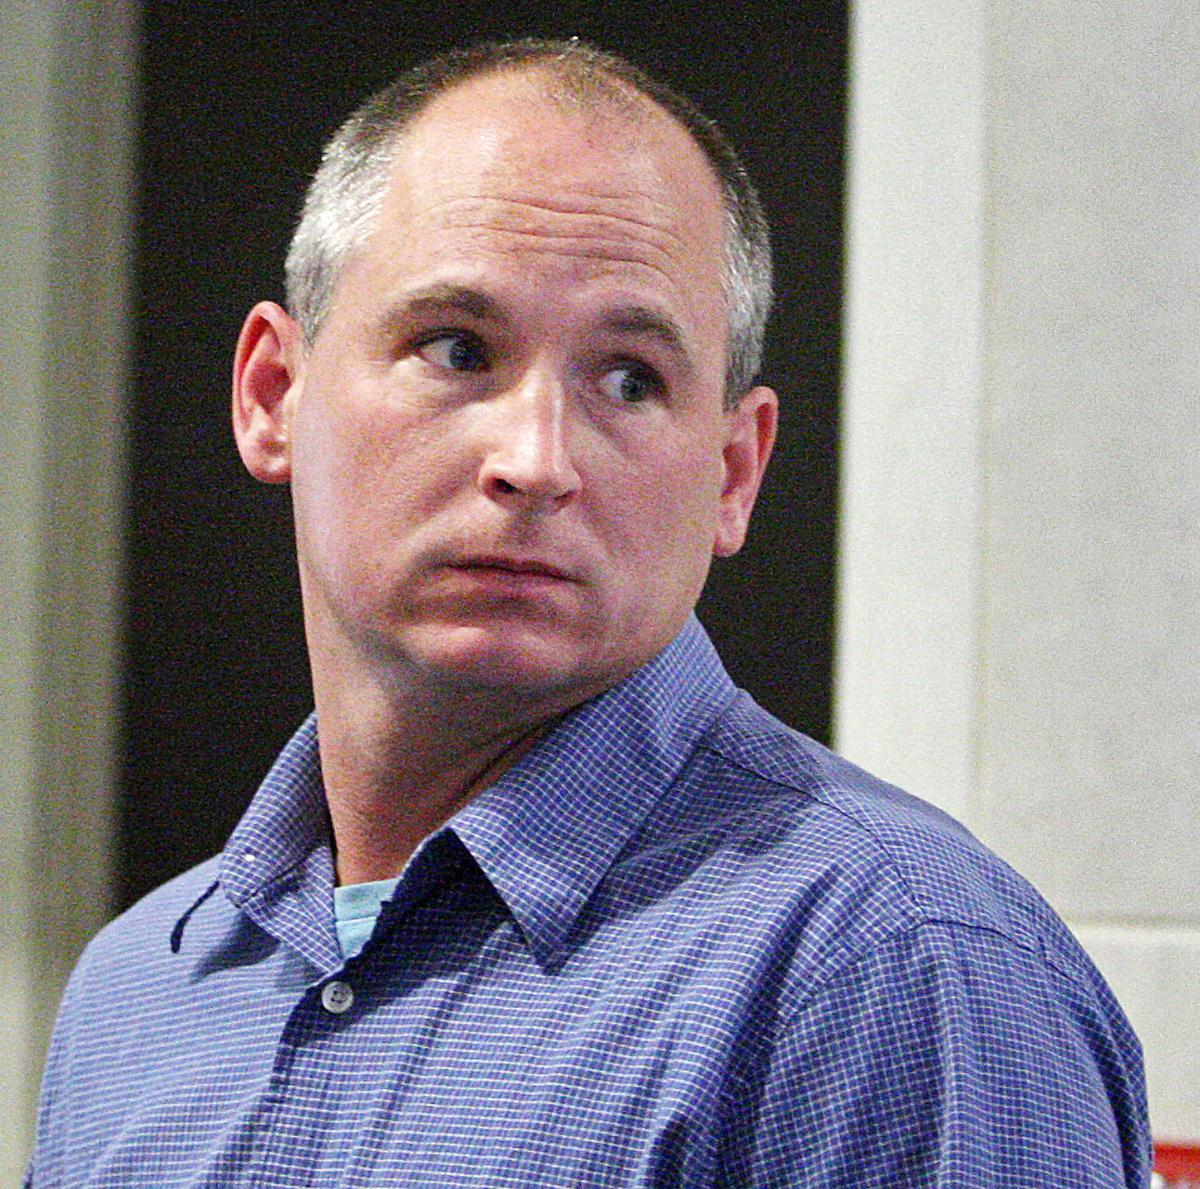 McCaffrey admitted to 'problems' Told officer of difficulties with wife